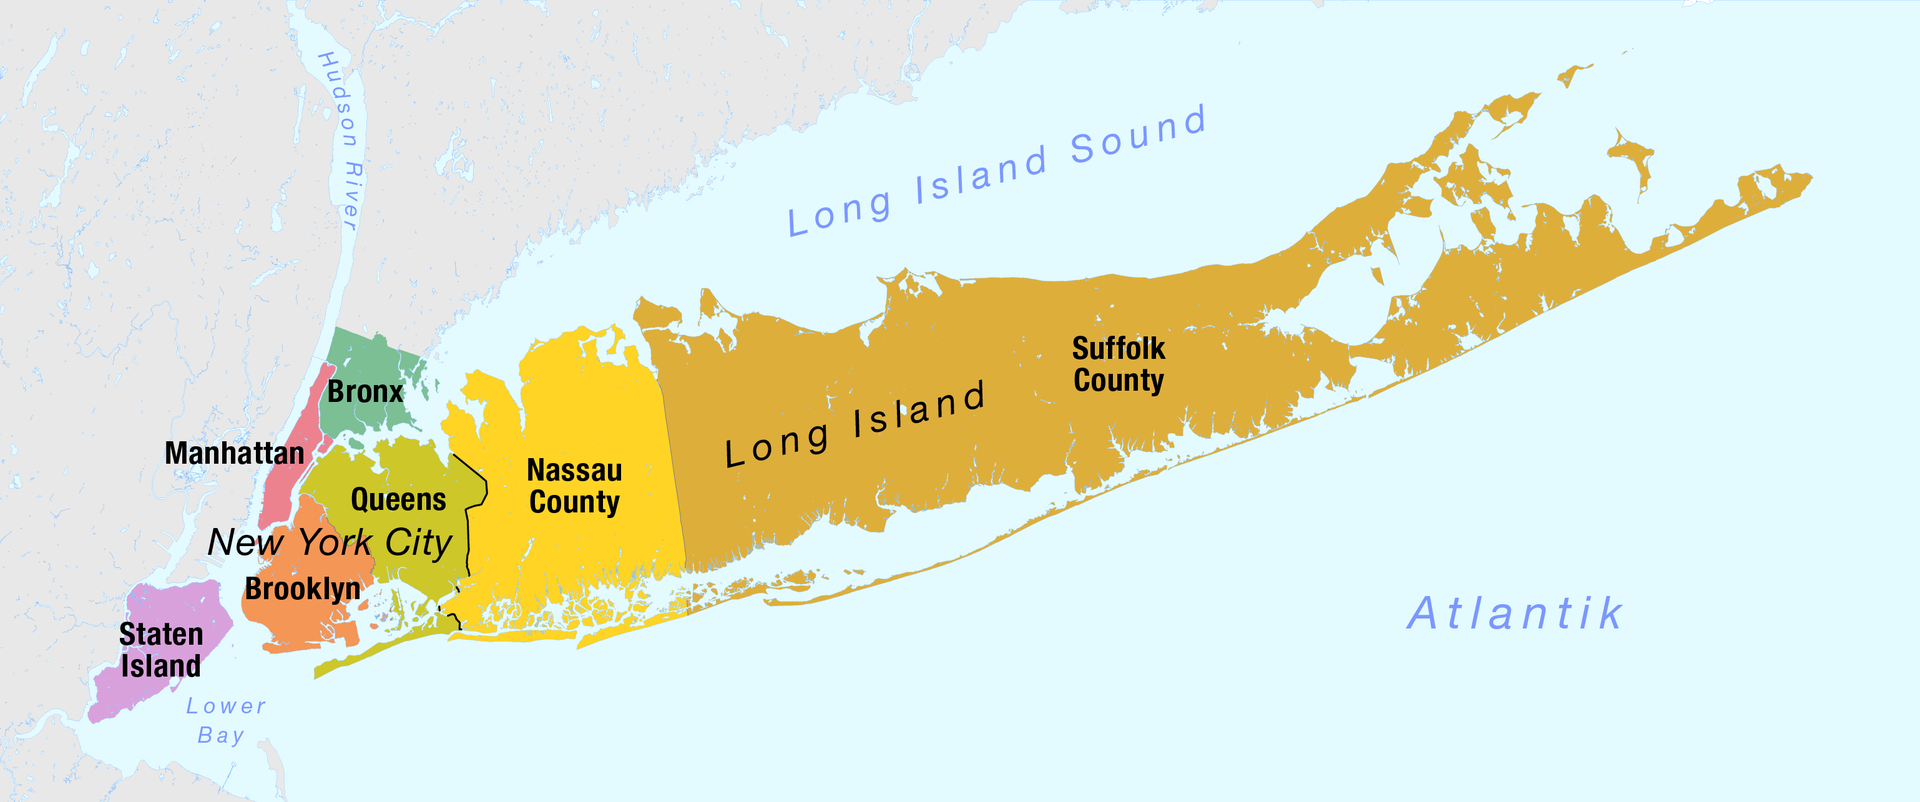 Map Of Long Island New York Map of the Boroughs of New York City and the counties of Long